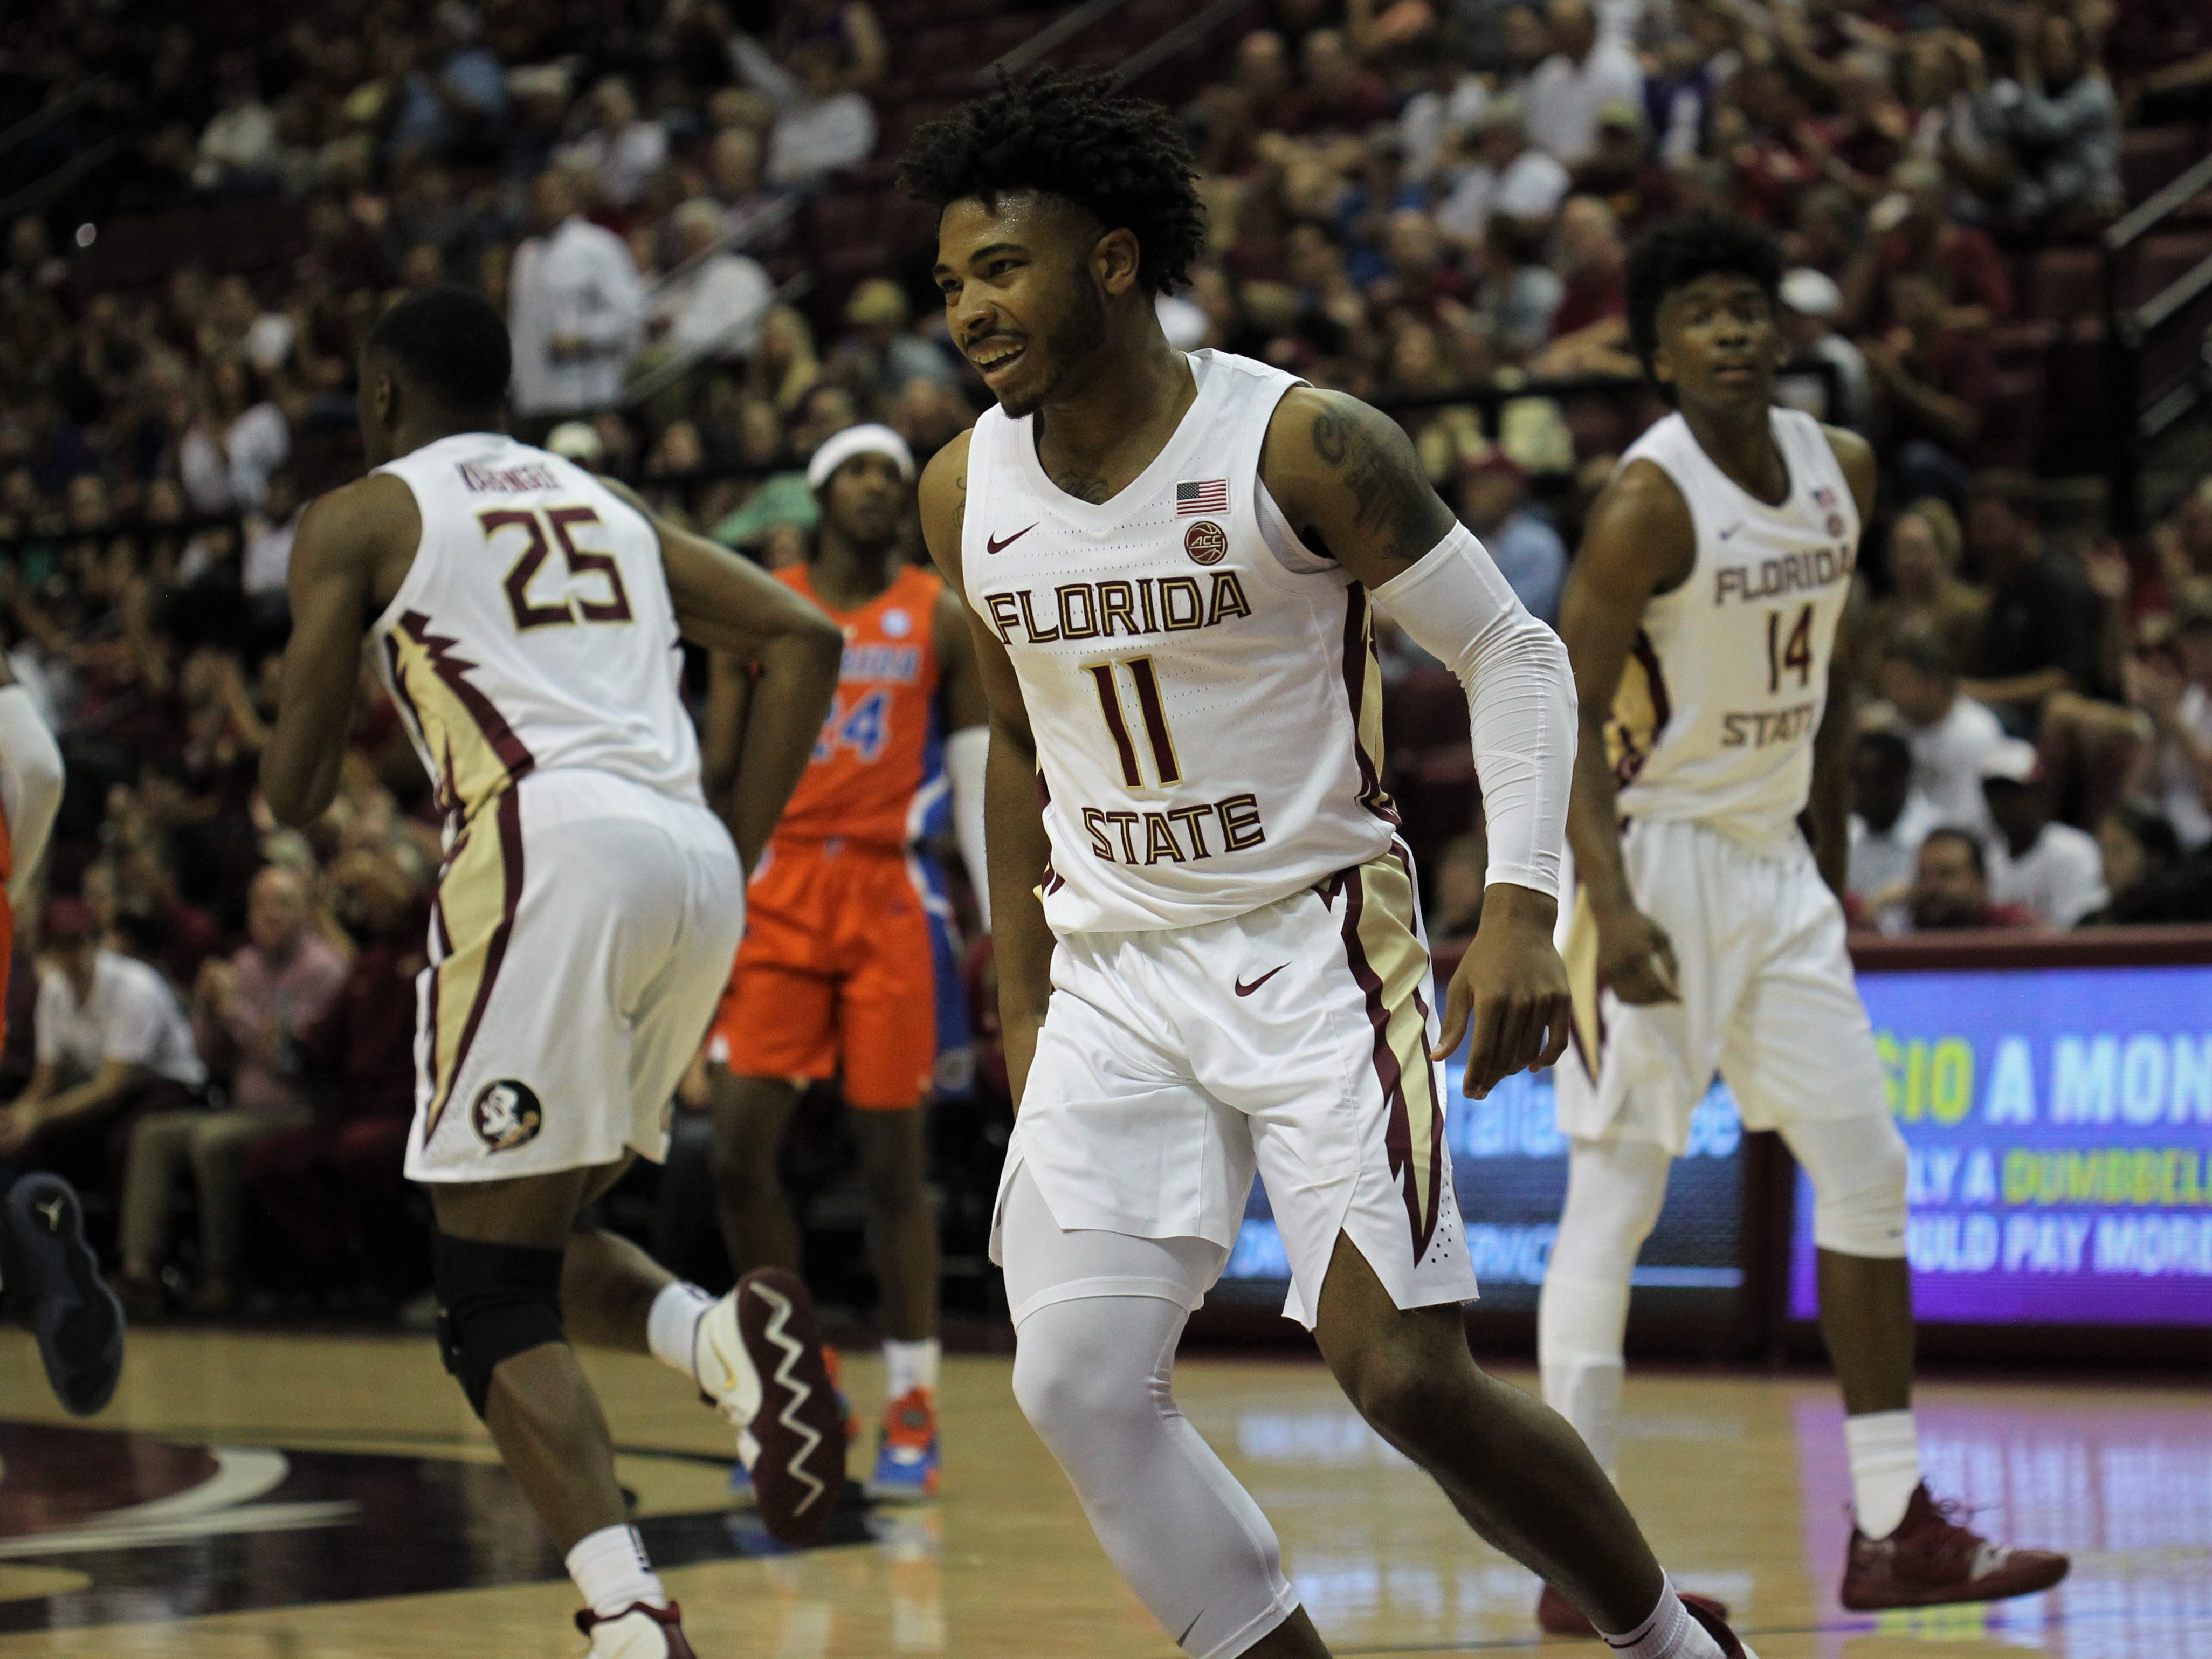 Florida State's David Nichols reacts to P.J. Savoy's made 3-pointer during the Sunshine Showdown game Tuesday at the Tucker Civic Center.